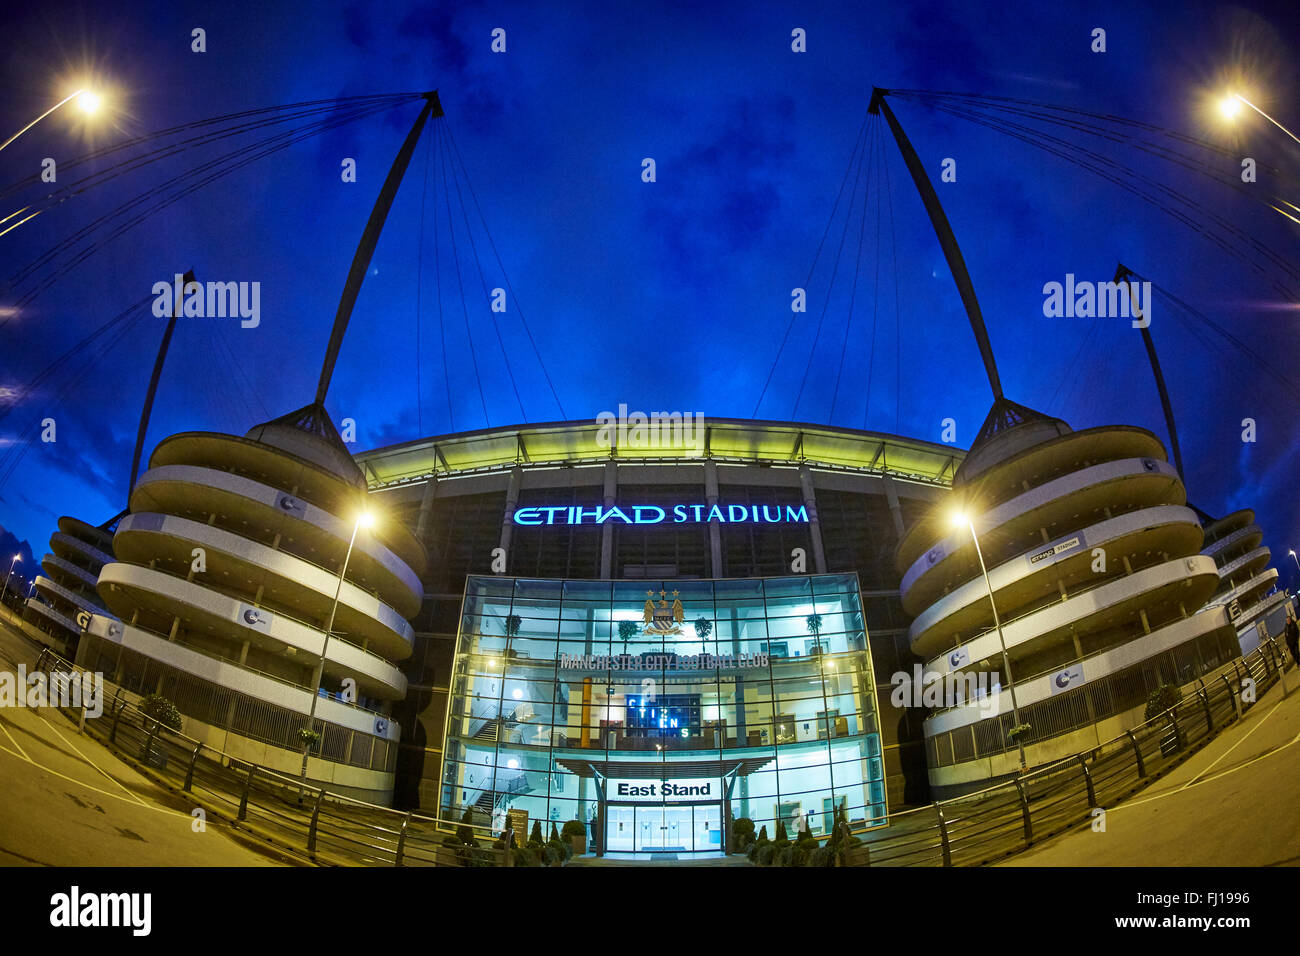 The City of Manchester Stadium in Manchester, England, also known as Etihad Stadium for sponsorship reasons, is - Stock Image